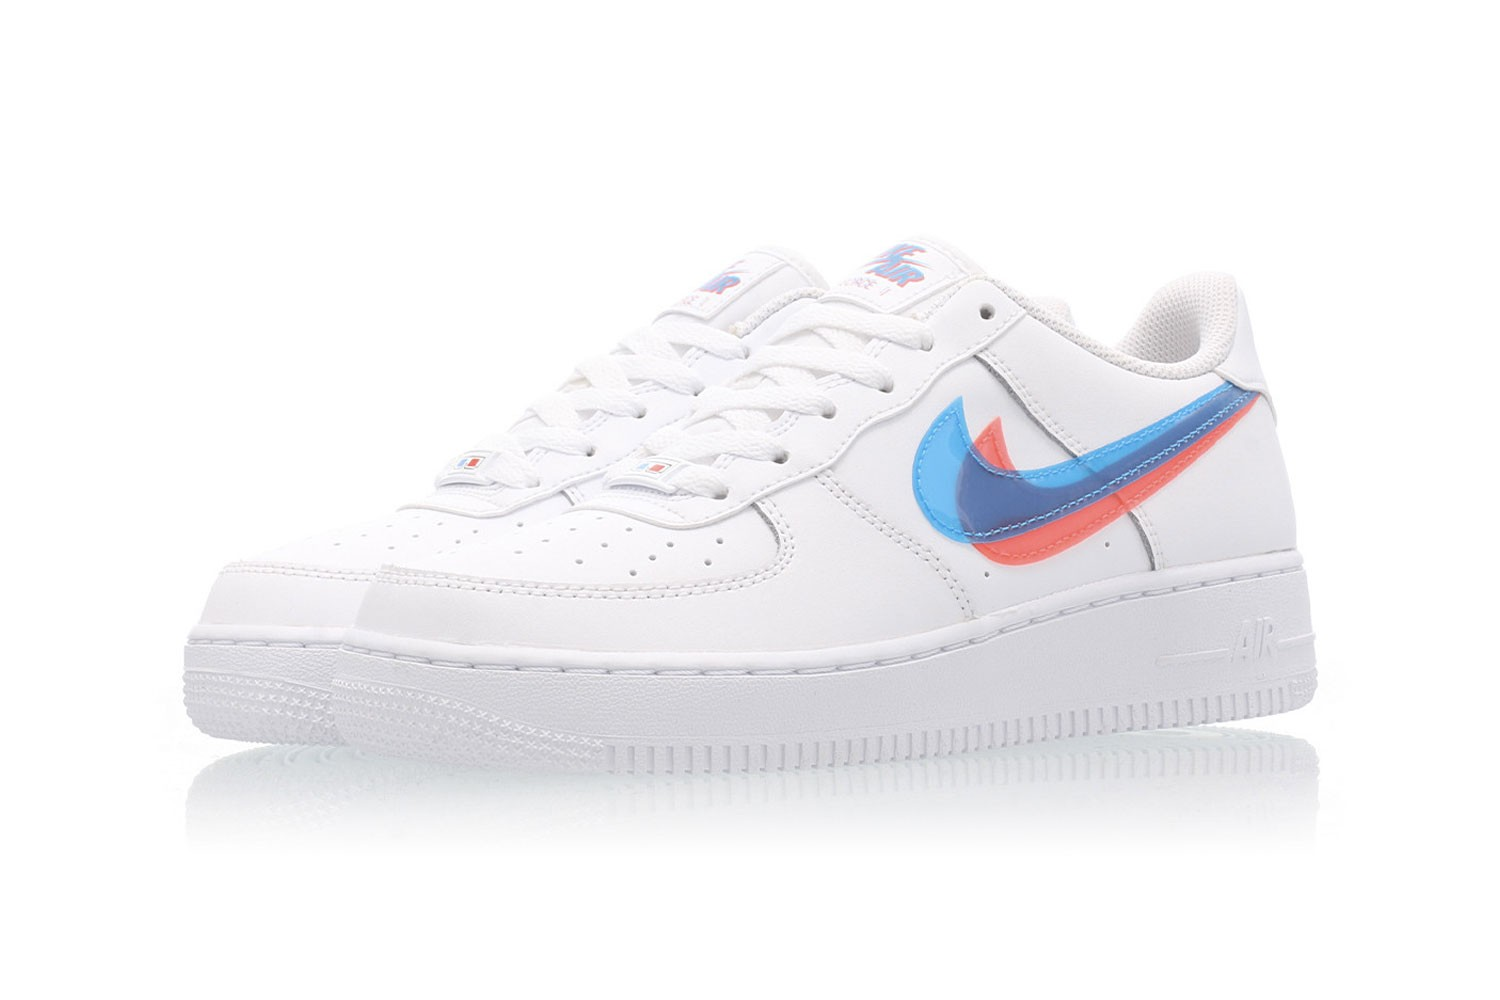 Nike Releases Air Force 1 with 3D